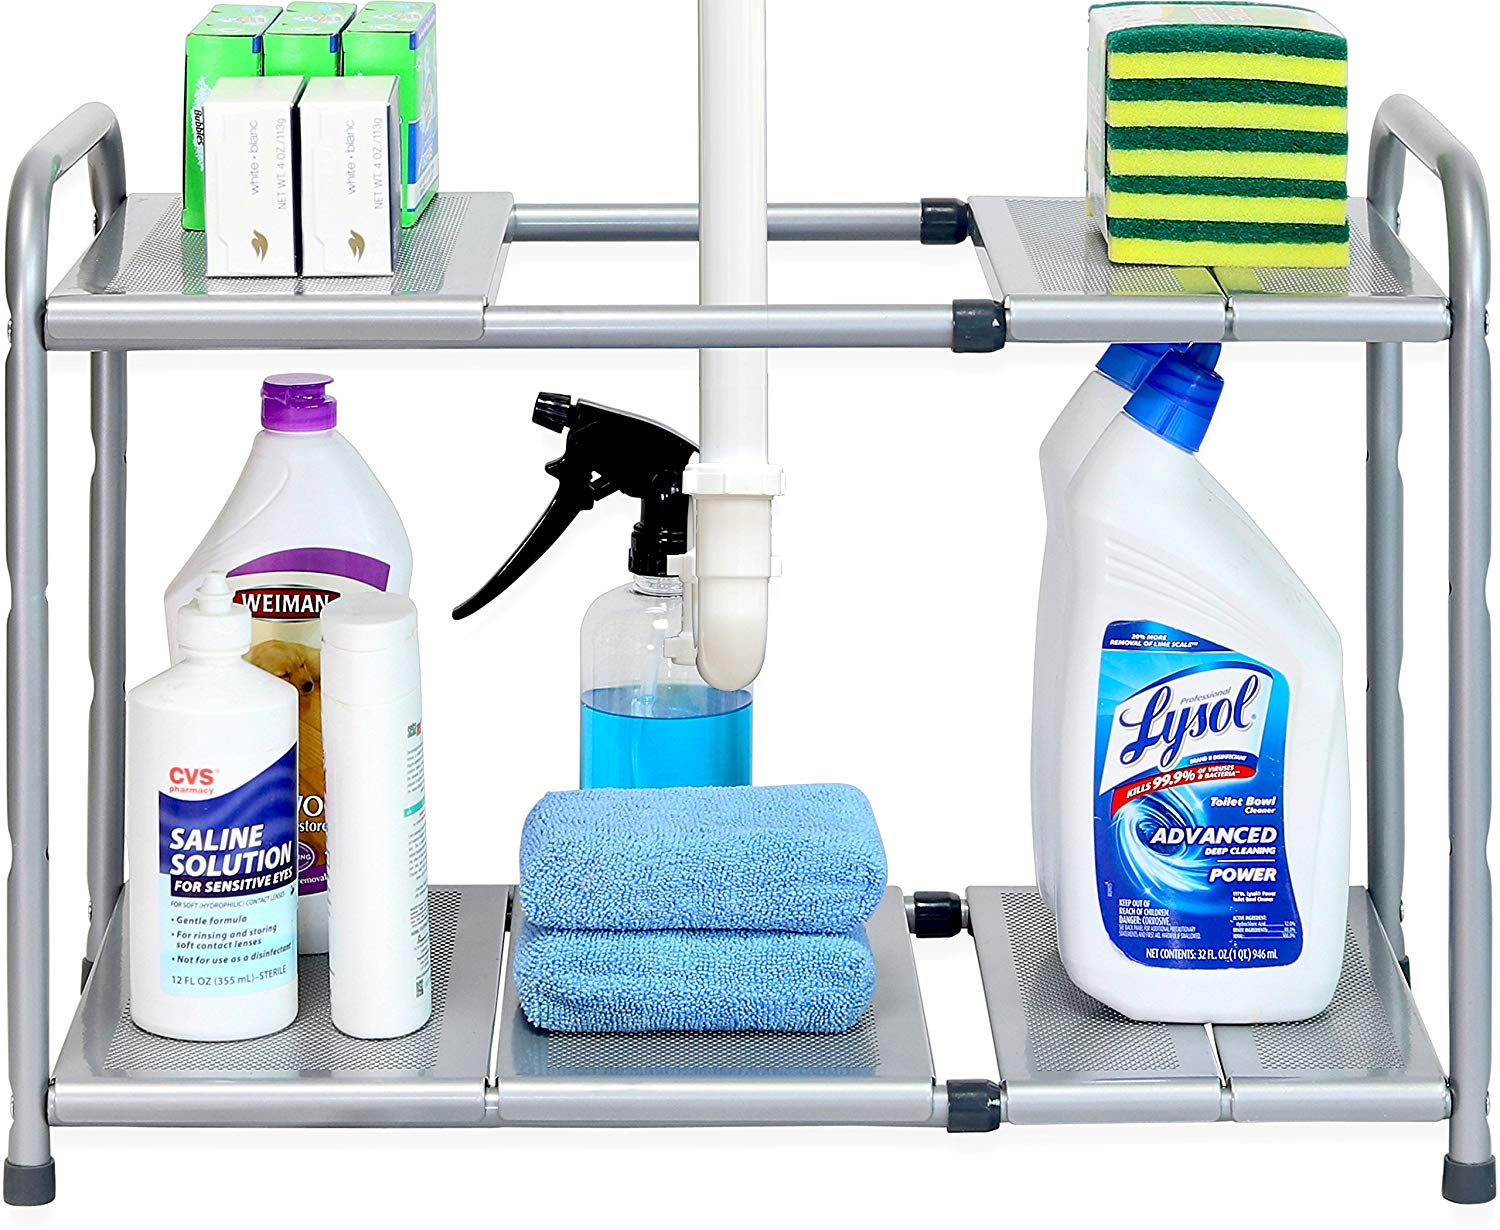 Expandable Shelf - If those pipes are really bogging you down, an expandable shelf is the solution! This guy adjusts to fit around all of the junk under your sink and still provide lots of room to store your collection of products. Winning!